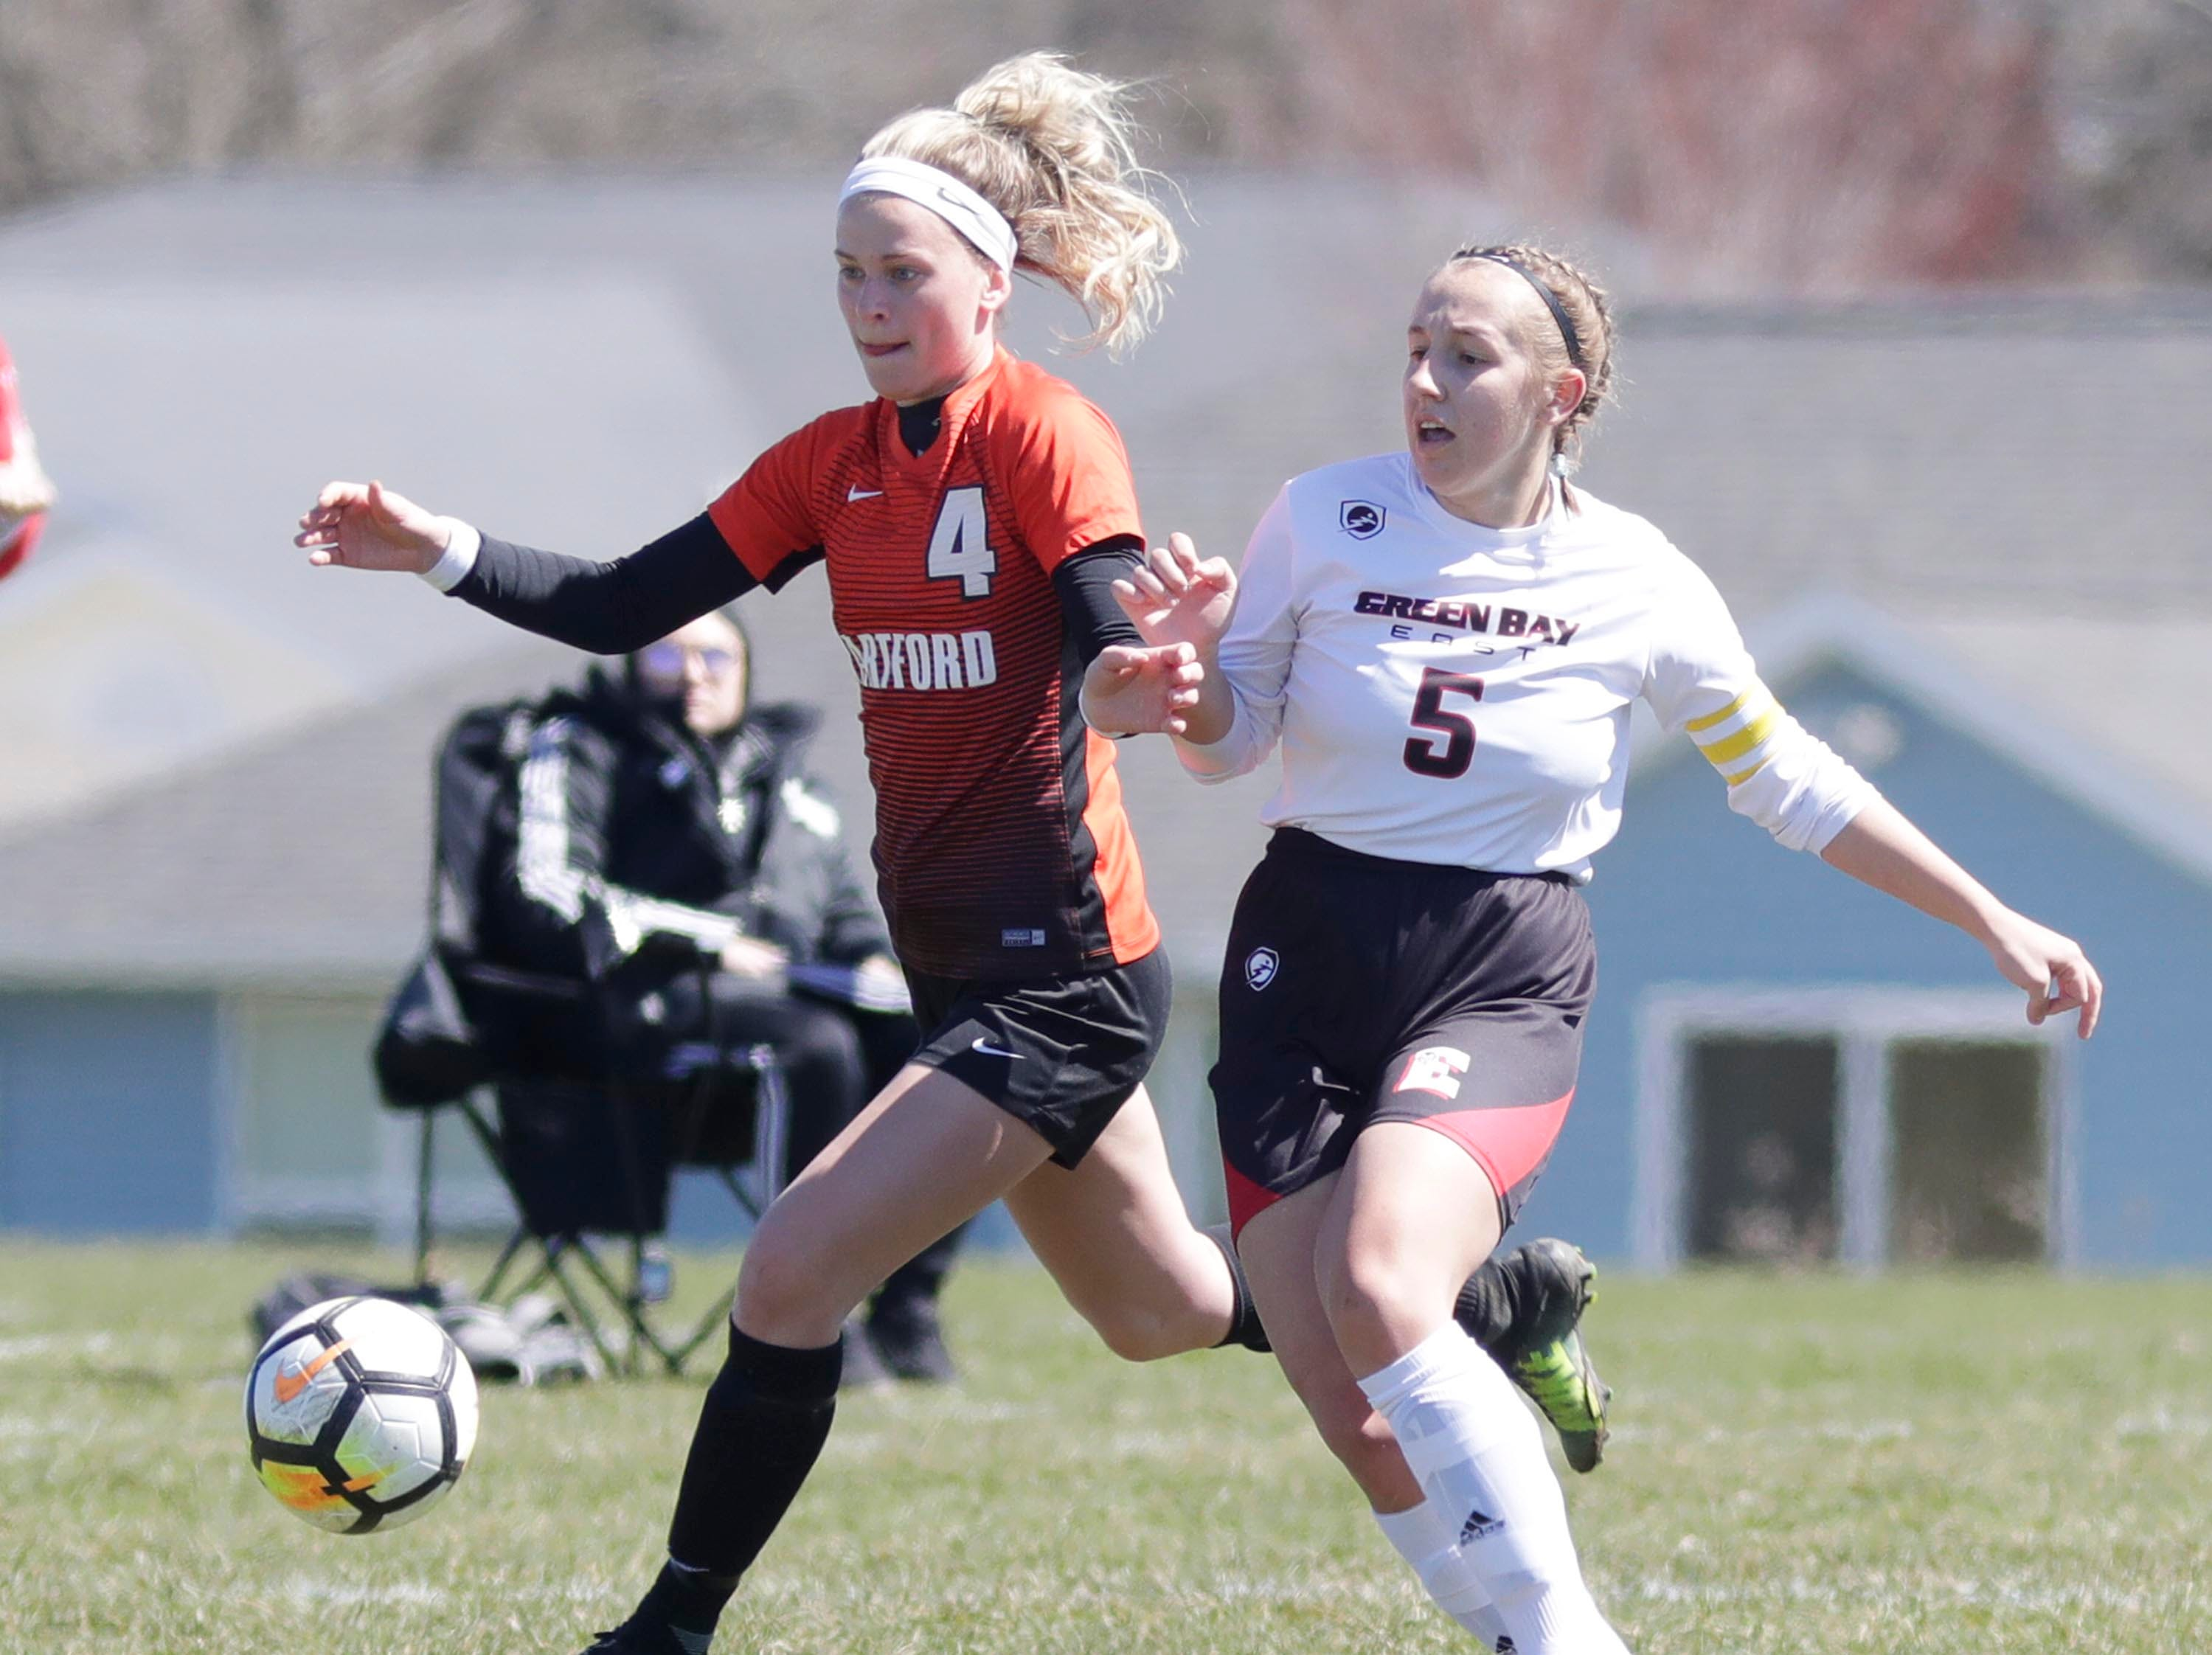 Hardford's Maggie Mueller (4) and Green Bay East's Morgan Baerenwald (5) chase the ball at the Sheboygan South Soccer tournament, Saturday, April 20, 2019, in Sheboygan, Wis.